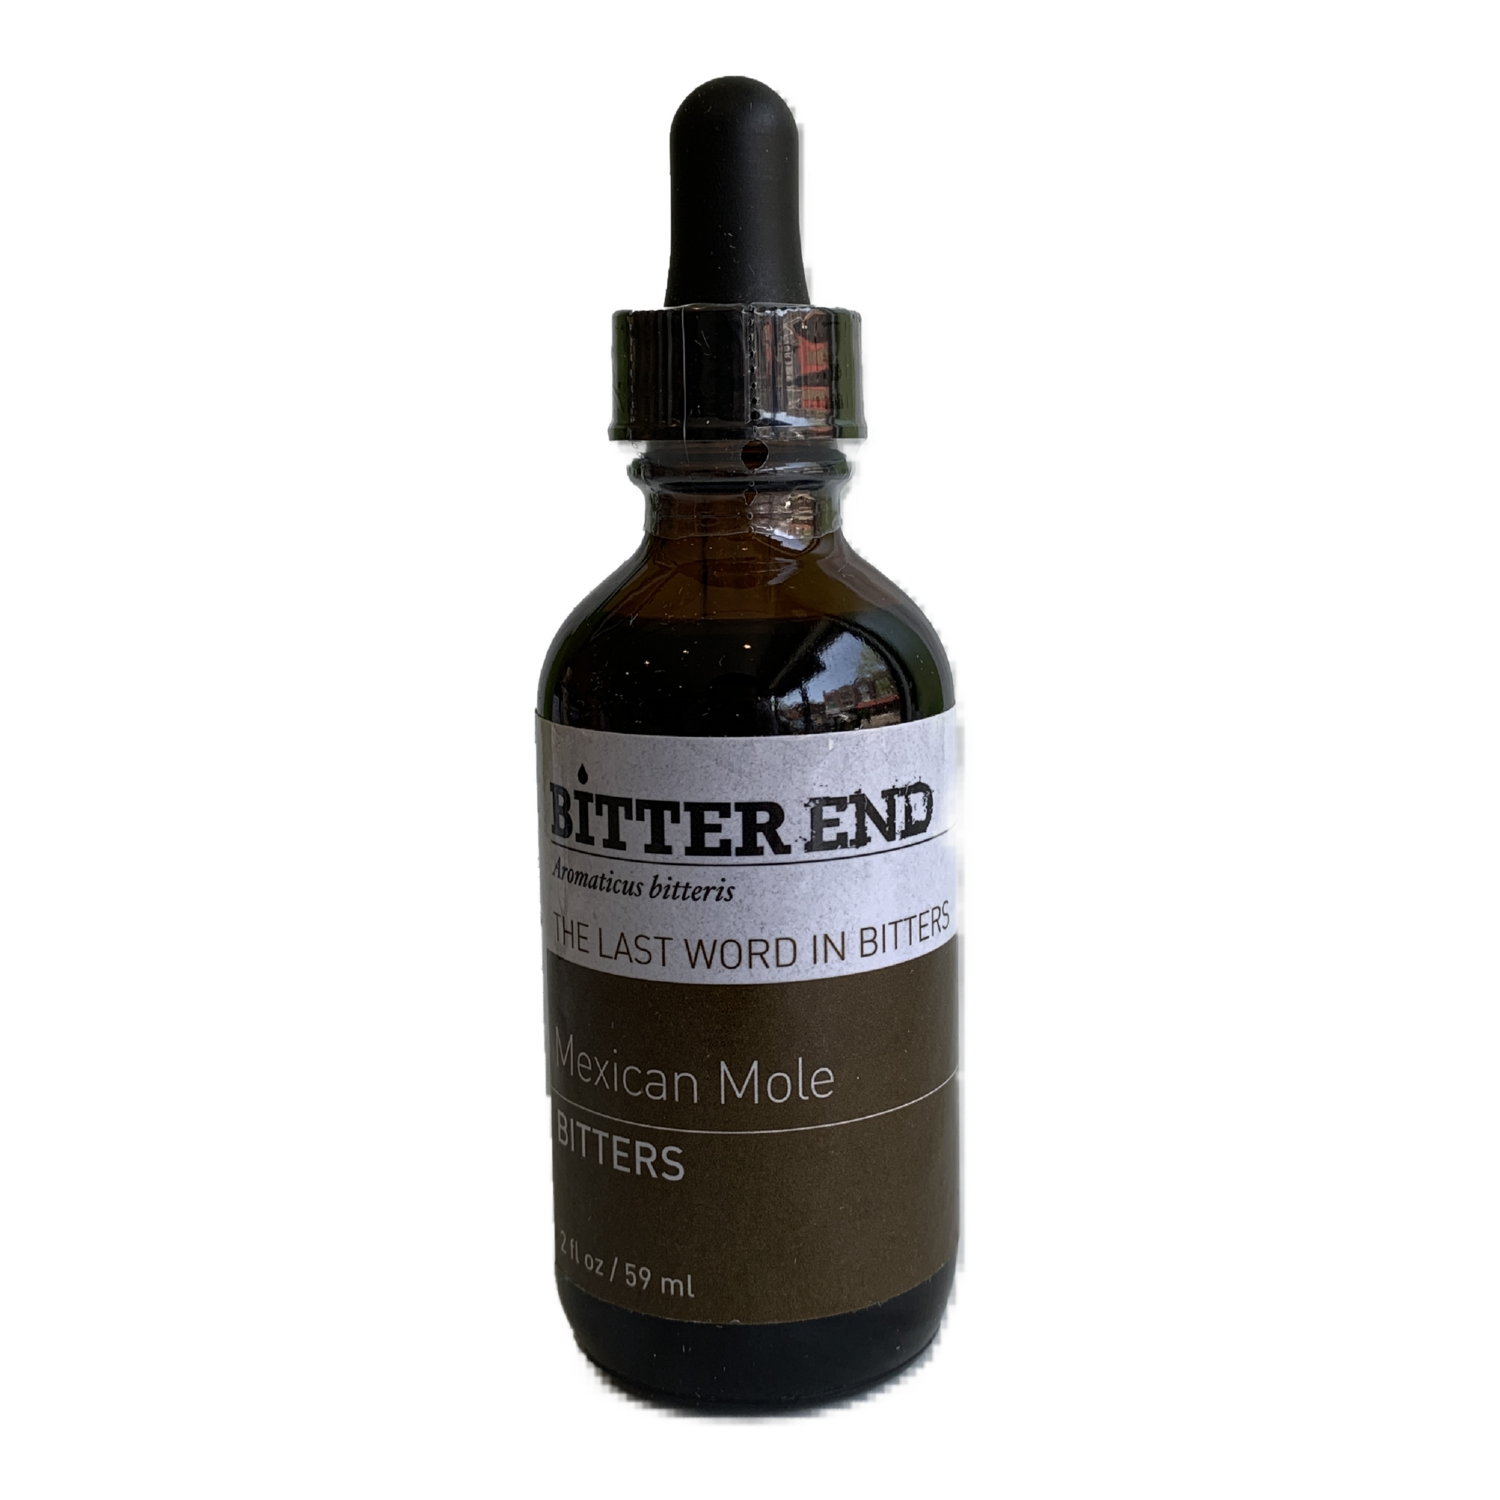 Bitter End Mexican Mole Bitters